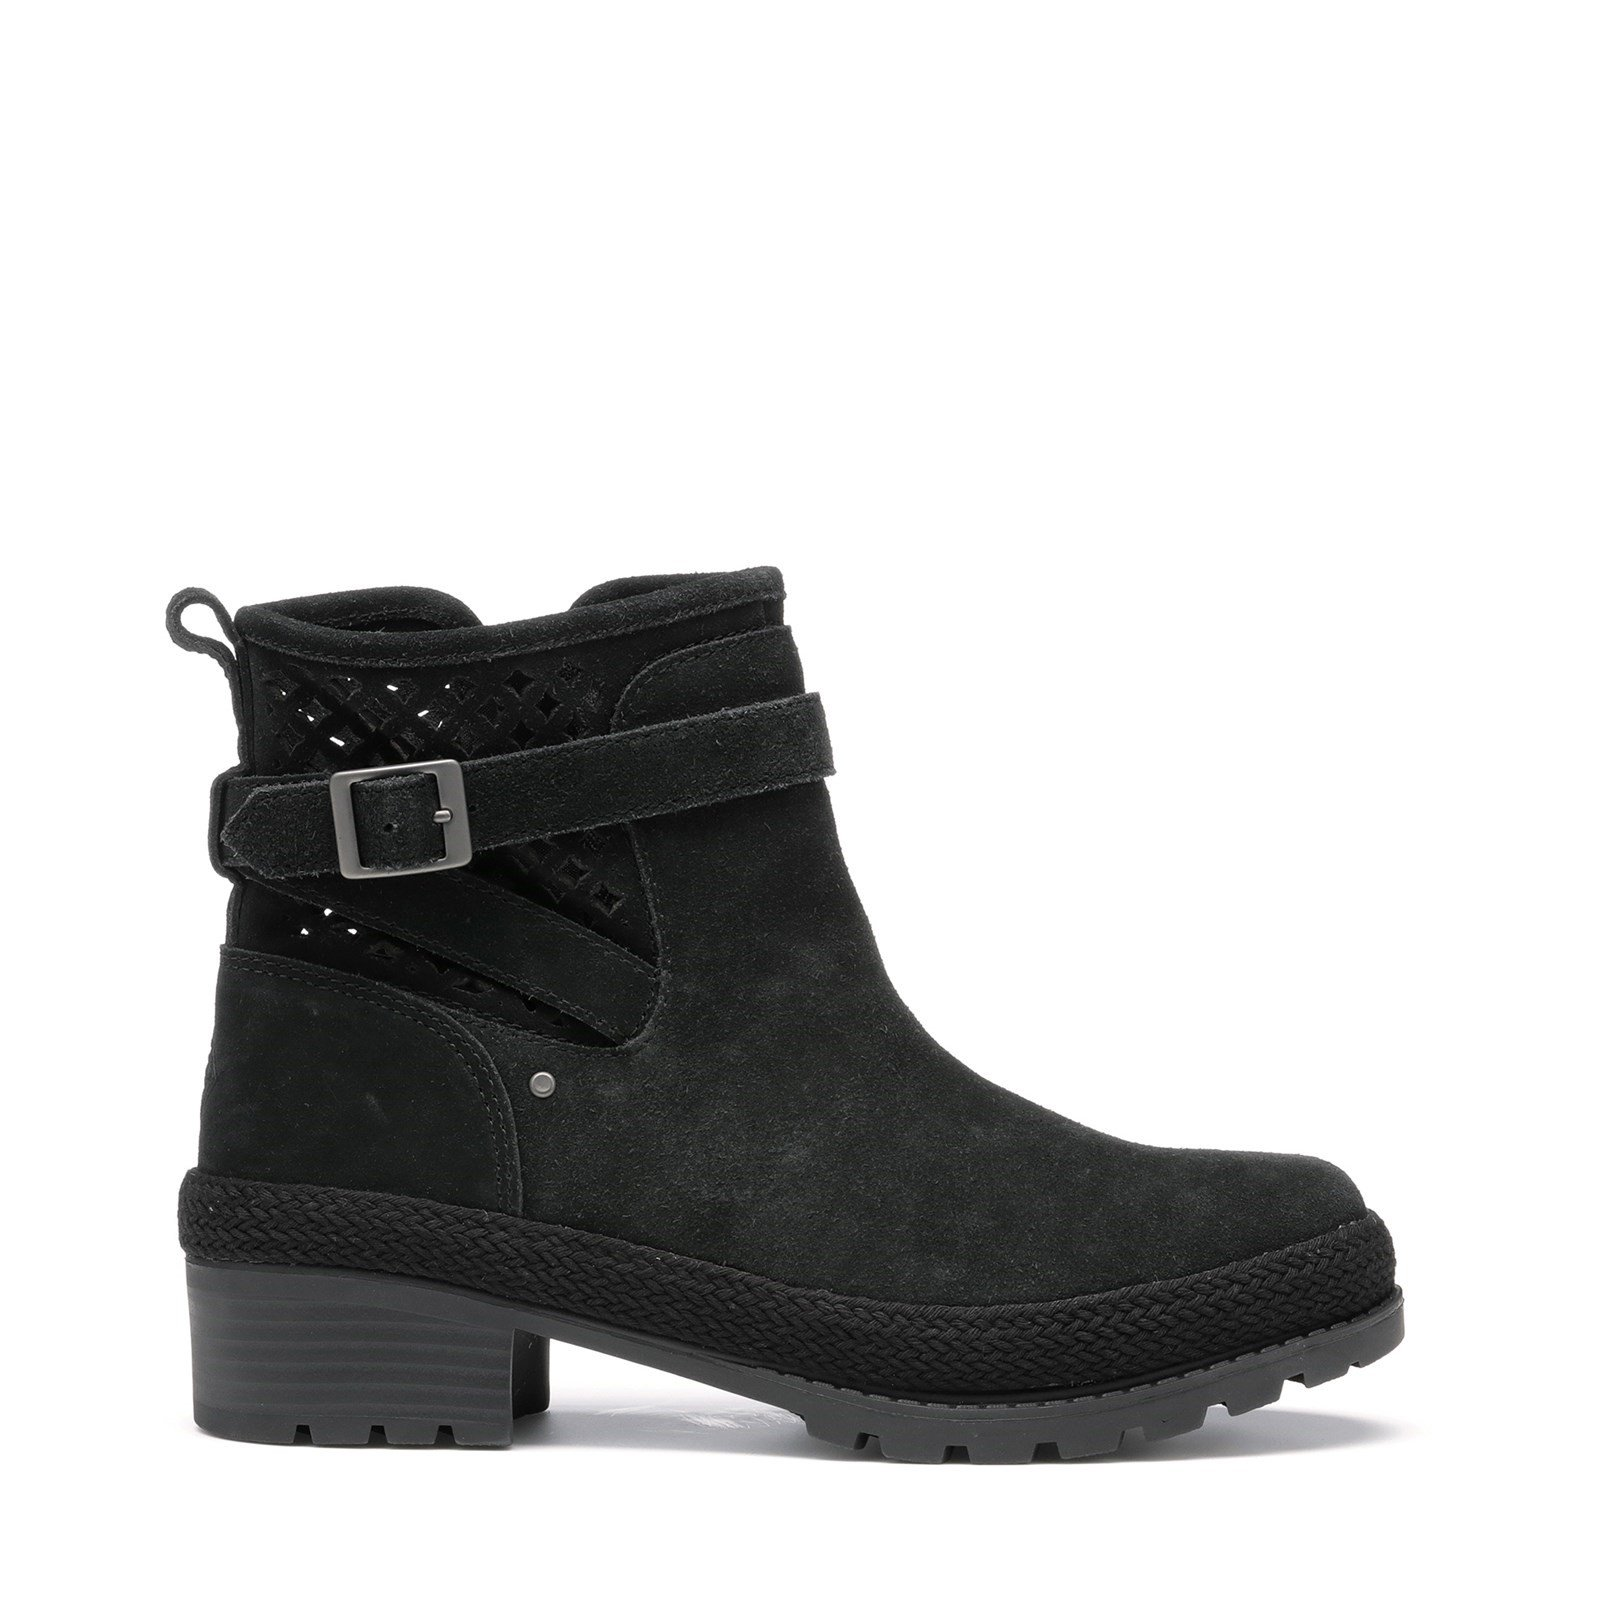 Muck Boots Women's Liberty Perforated Leather Boots Various Colours 31814 - Black 4.5